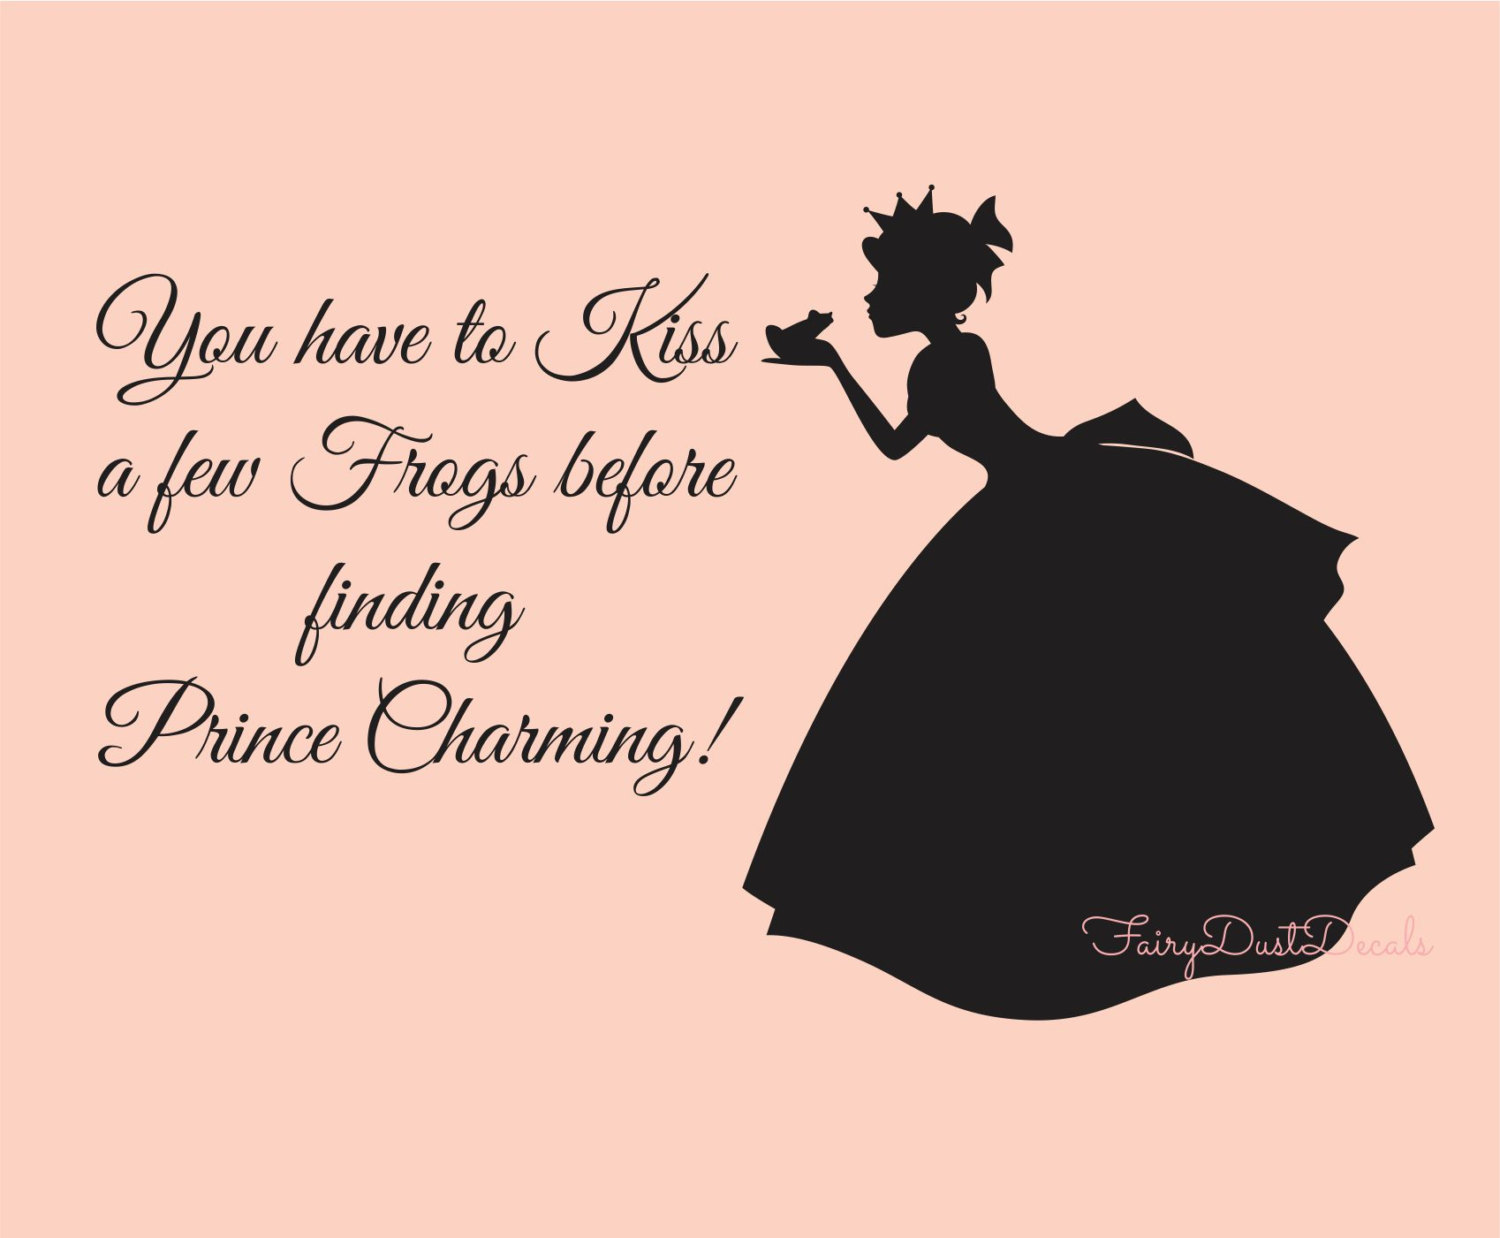 Black And White Tree Wallpaper Once Upon A Time Quotes About Prince Charming 102 Quotes